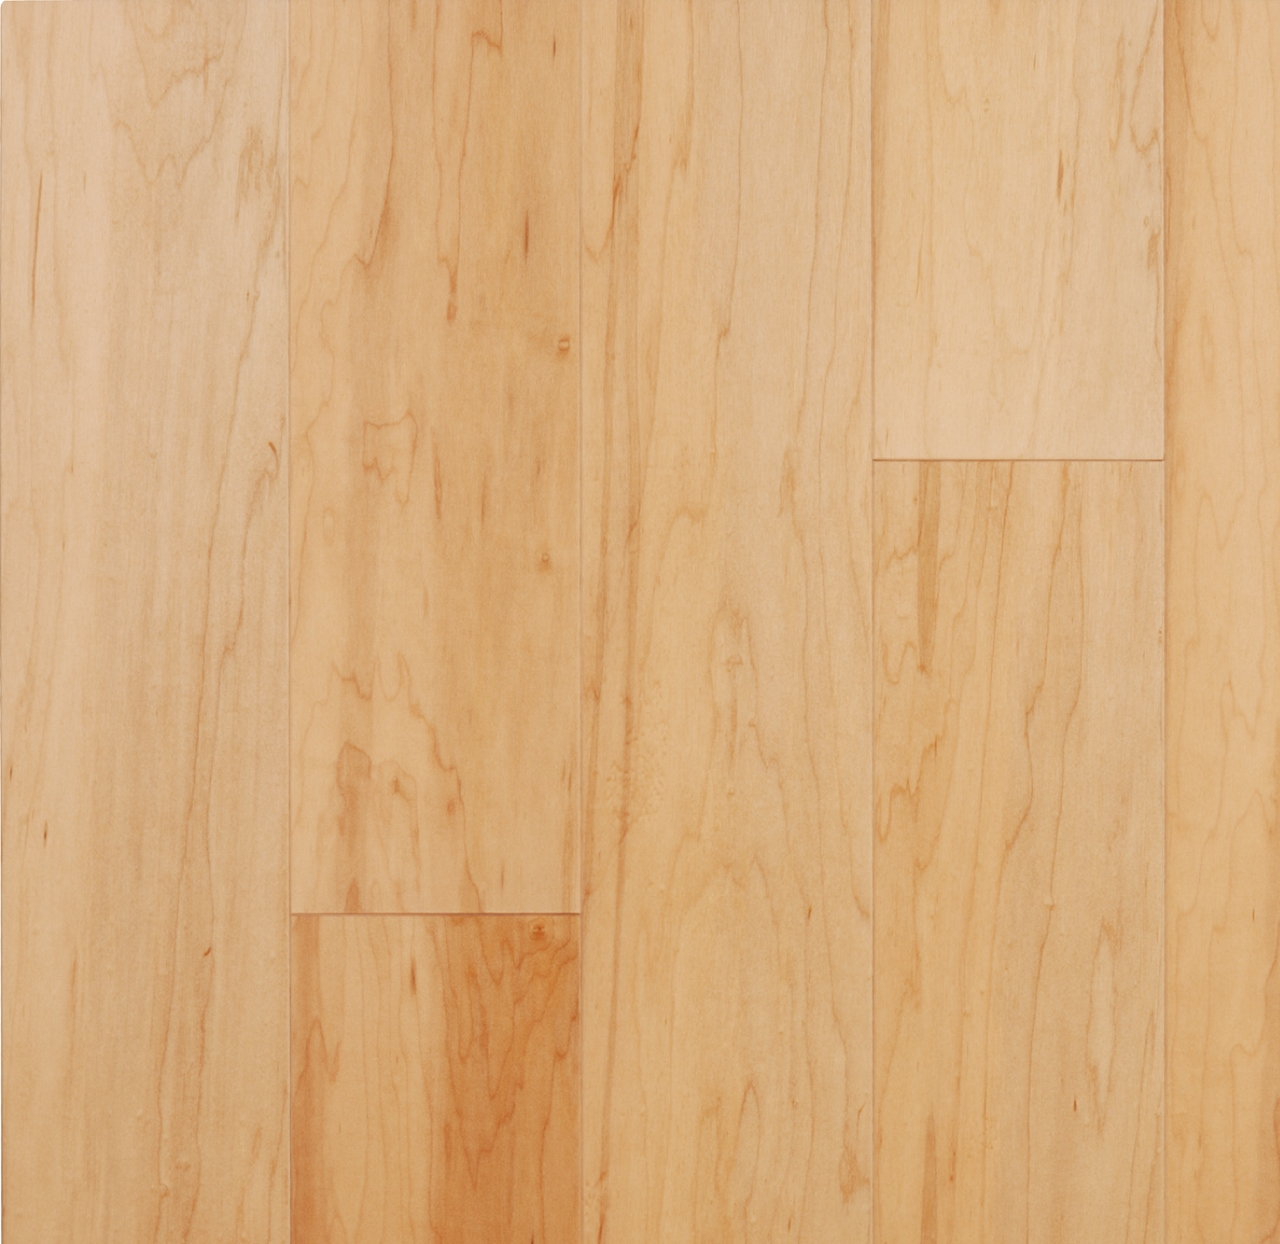 Lm Flooring Kendall Country Maple Natural Hardwood Flooring